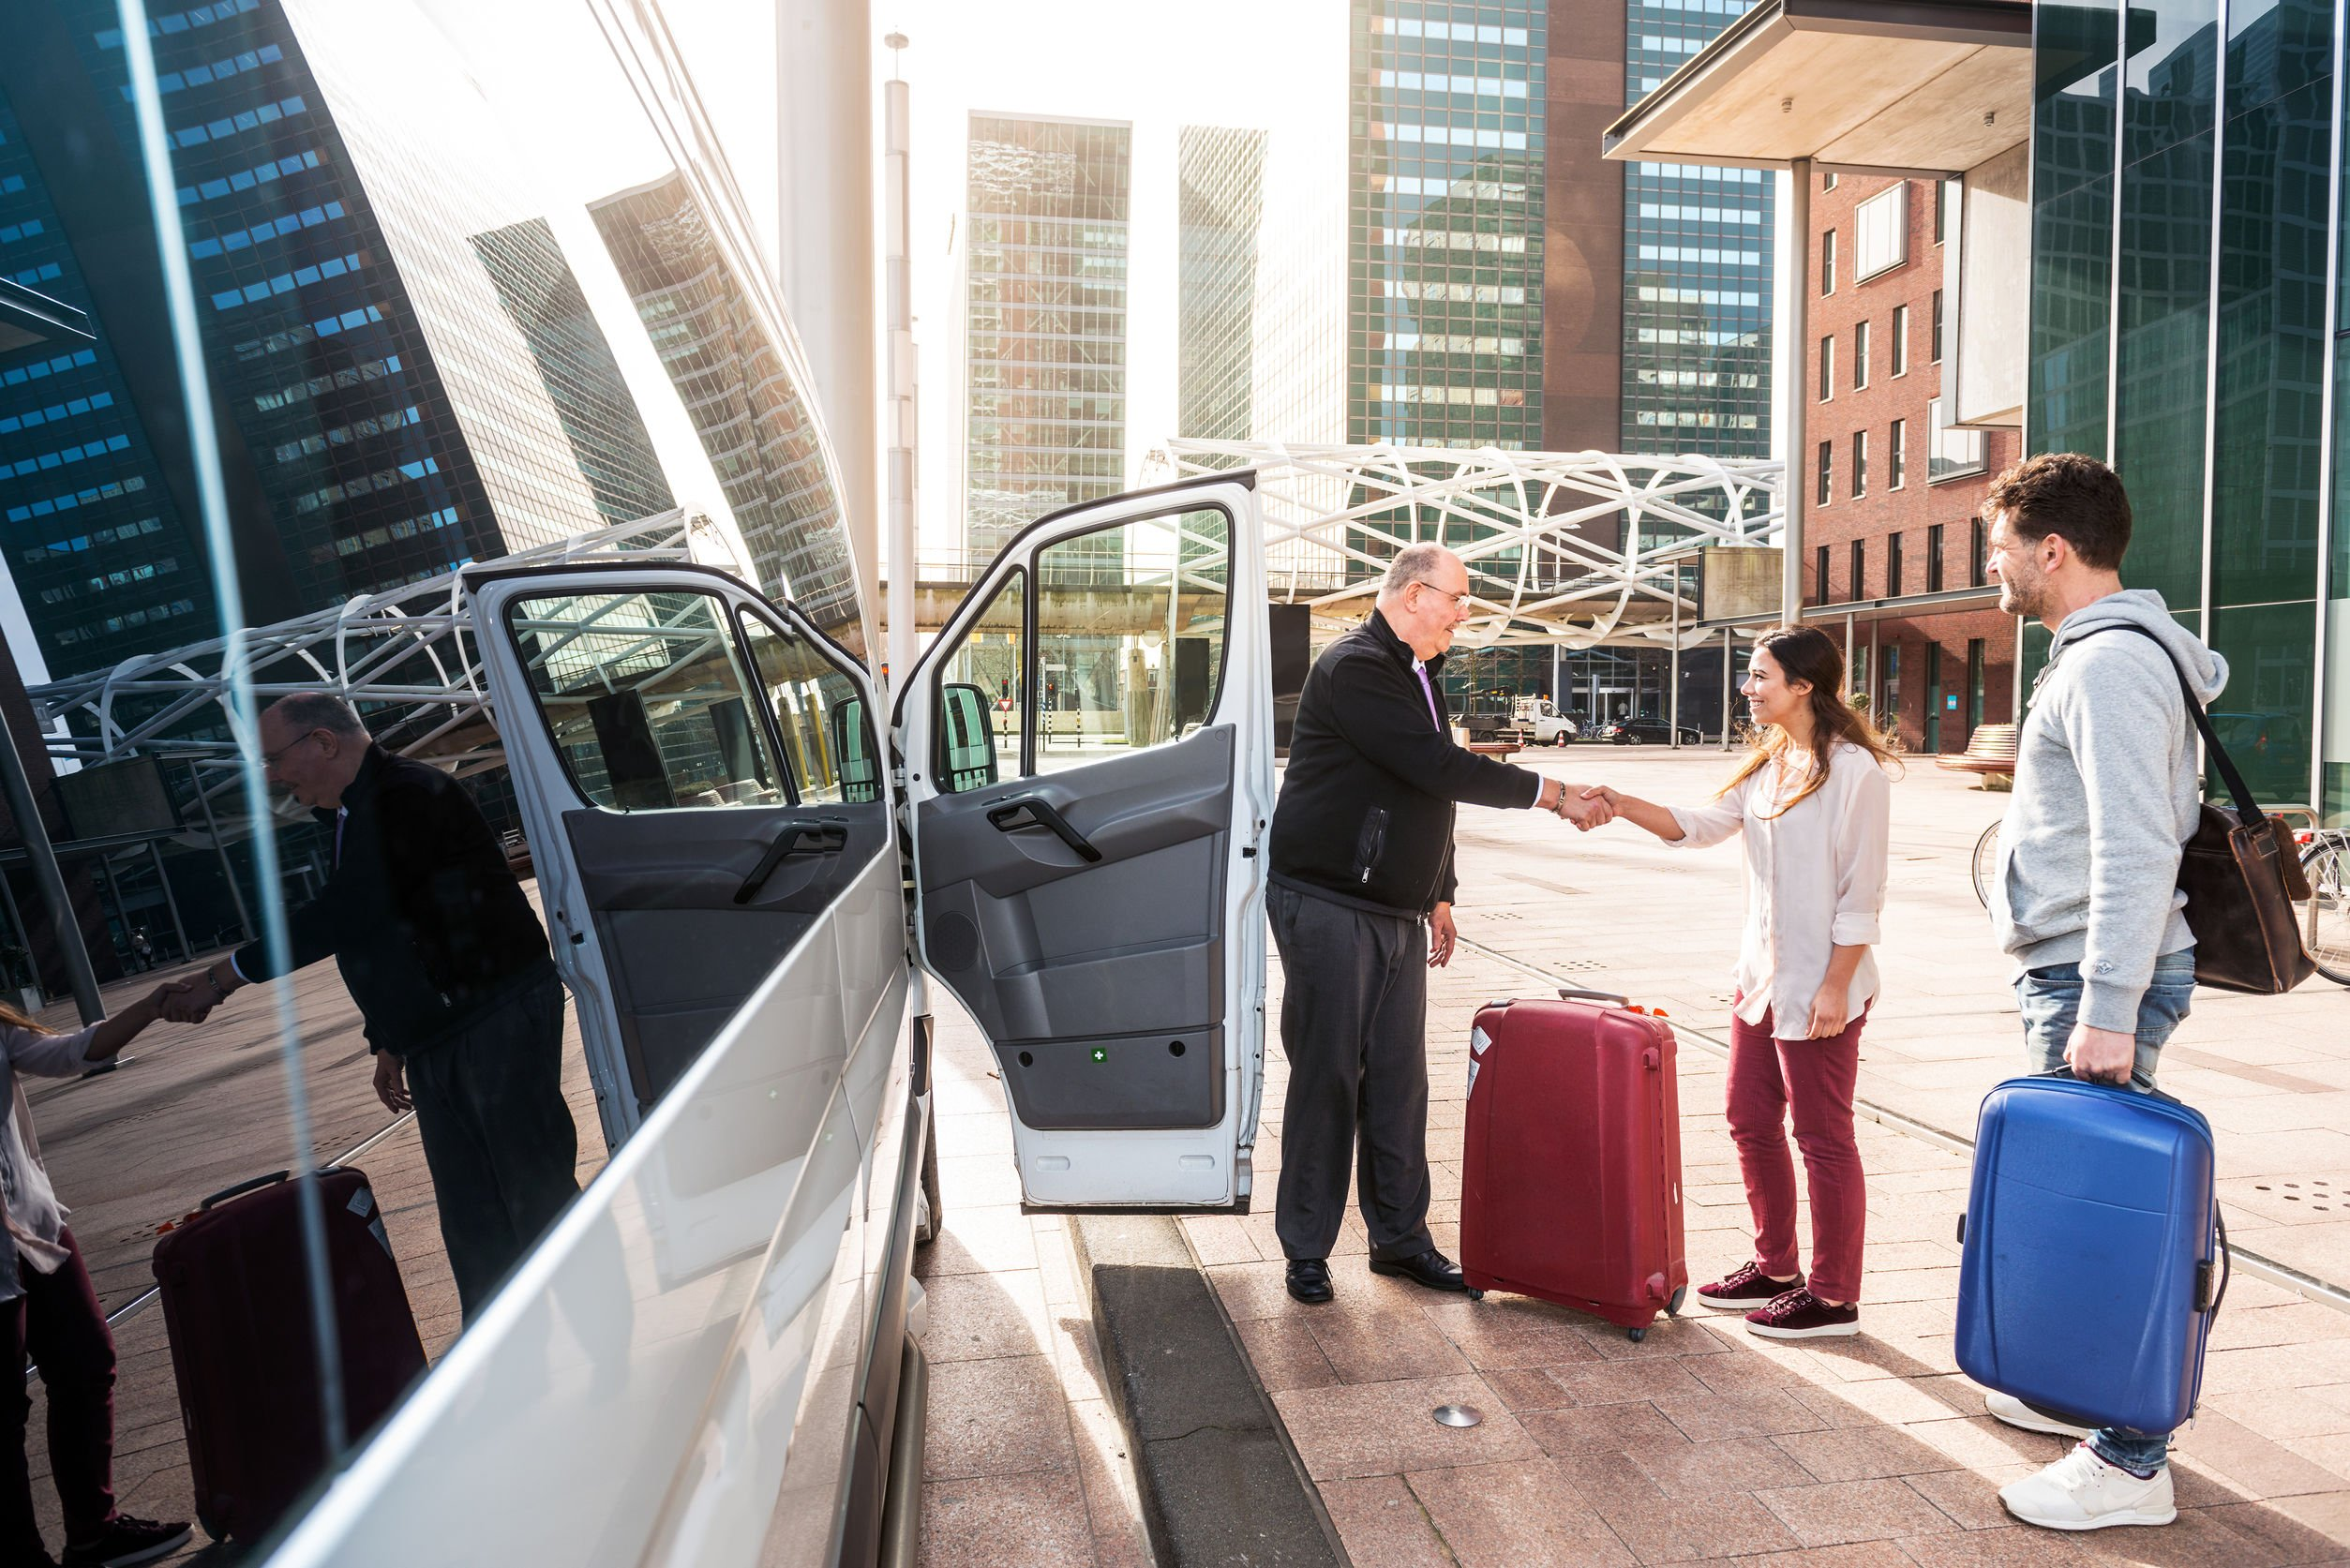 Airport Shuttle driver and passengers in a big city